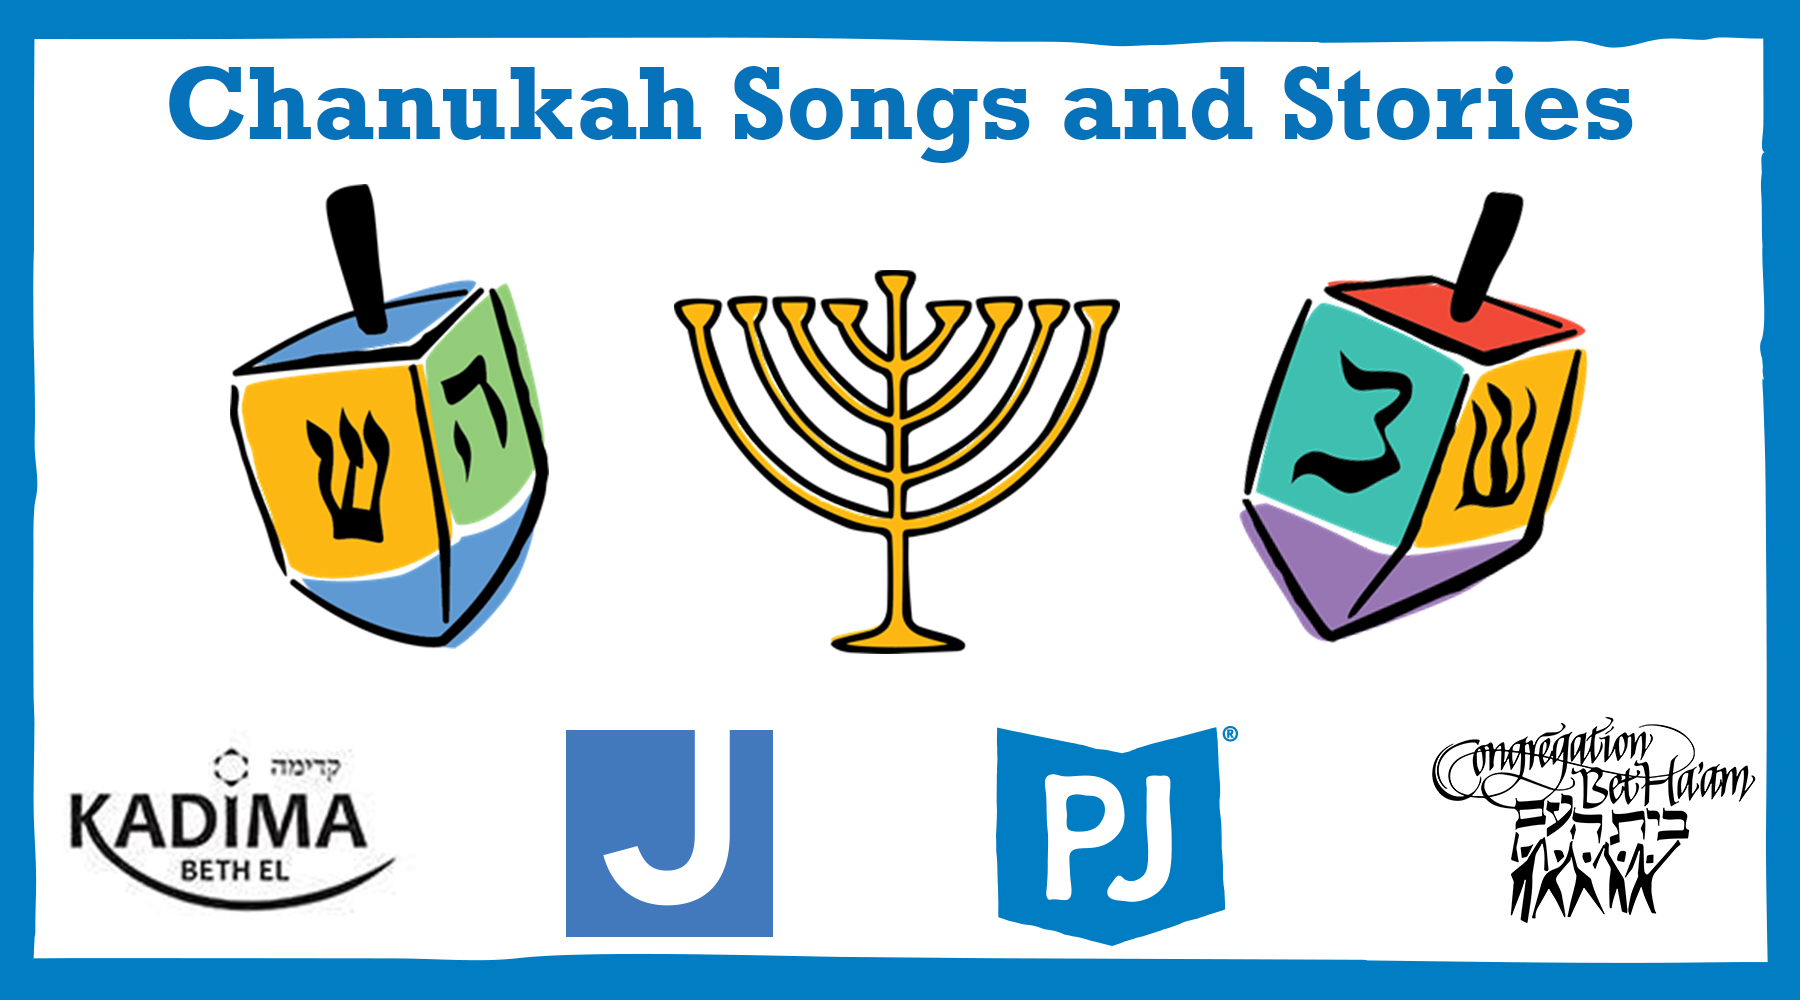 Chanukah Songs and Stories for website events